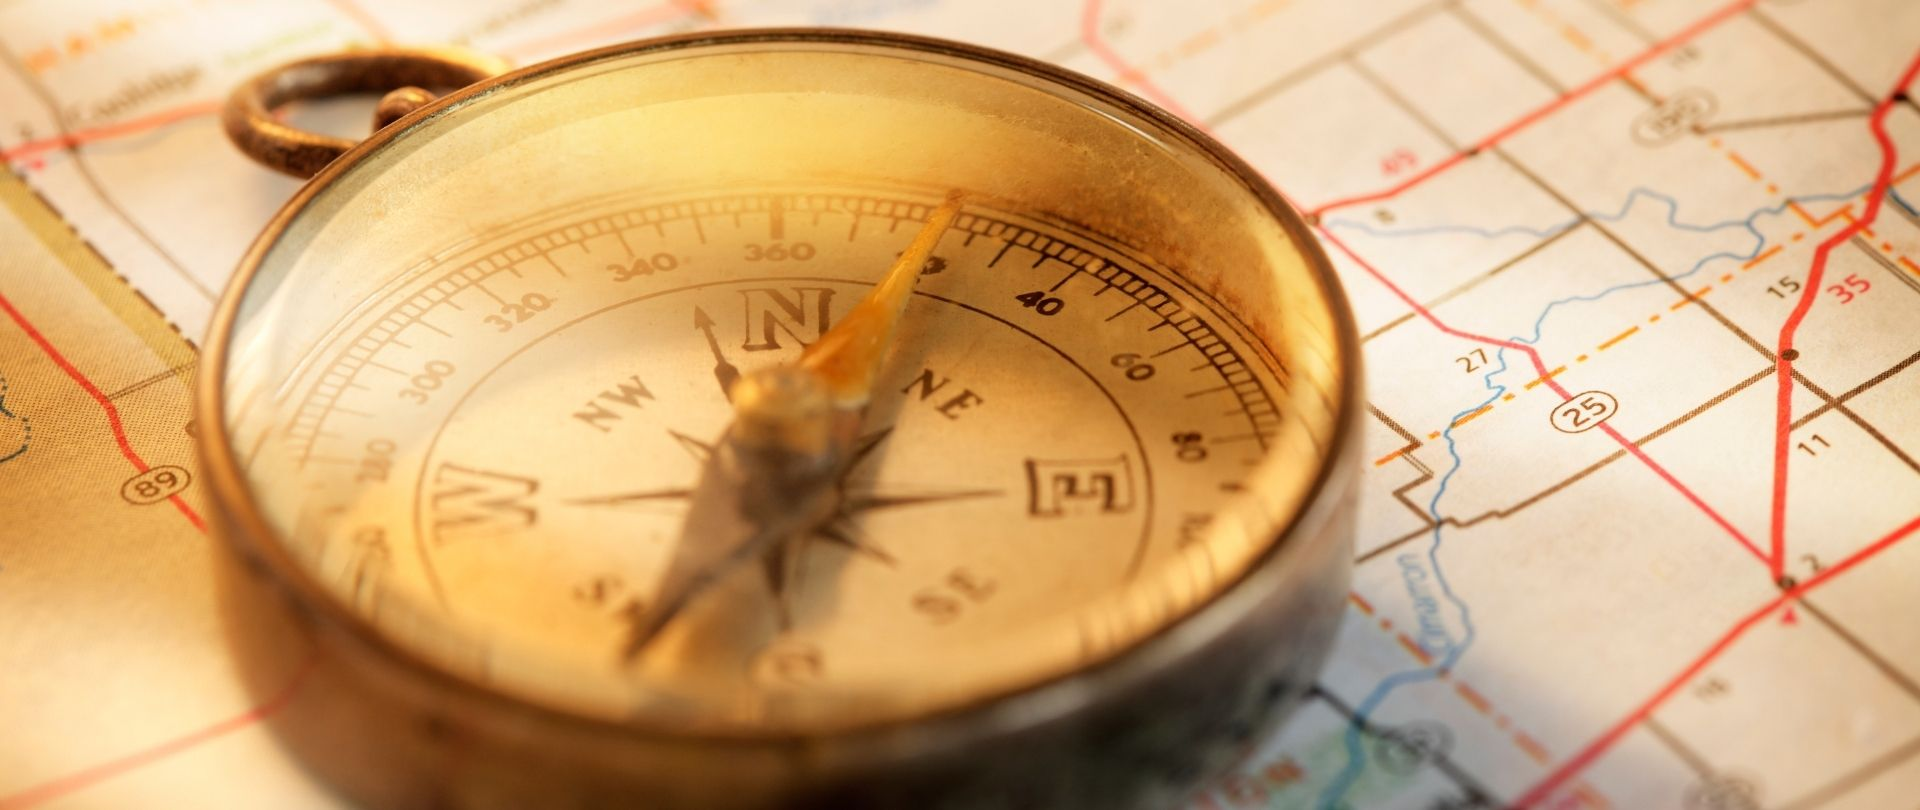 An image of a compass